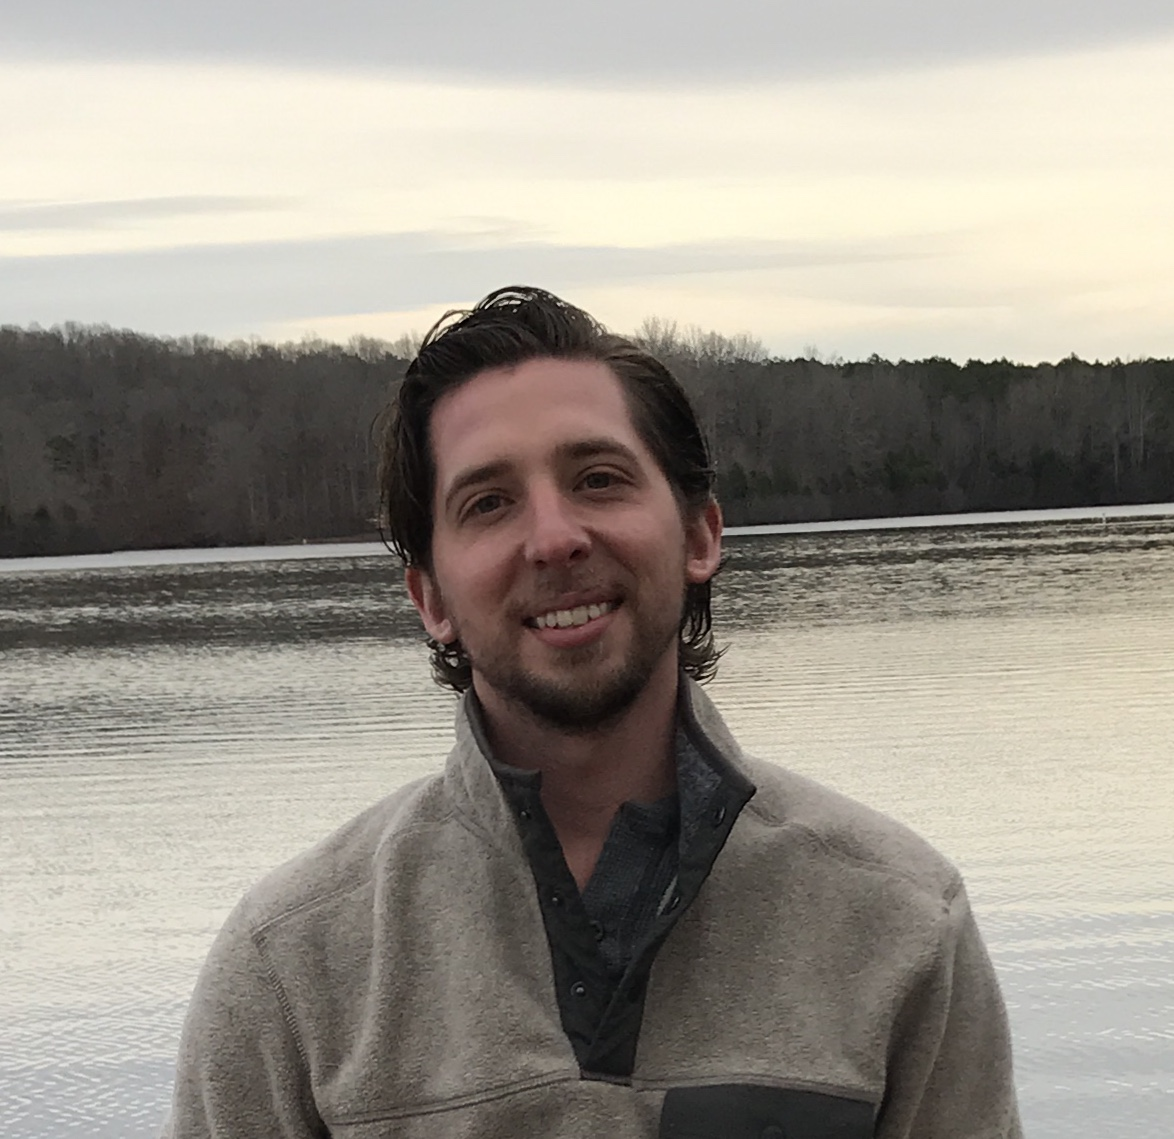 """Aaron Dargis - Aaron Dargis grew up in Michigan and now lives in the Foothills of South Carolina. He is Poetry Co-Editor for South 85 Journal. His most recent poem, 'Grey Partridge' appeared in Panoply Magazine as """"Editors'Choice."""""""